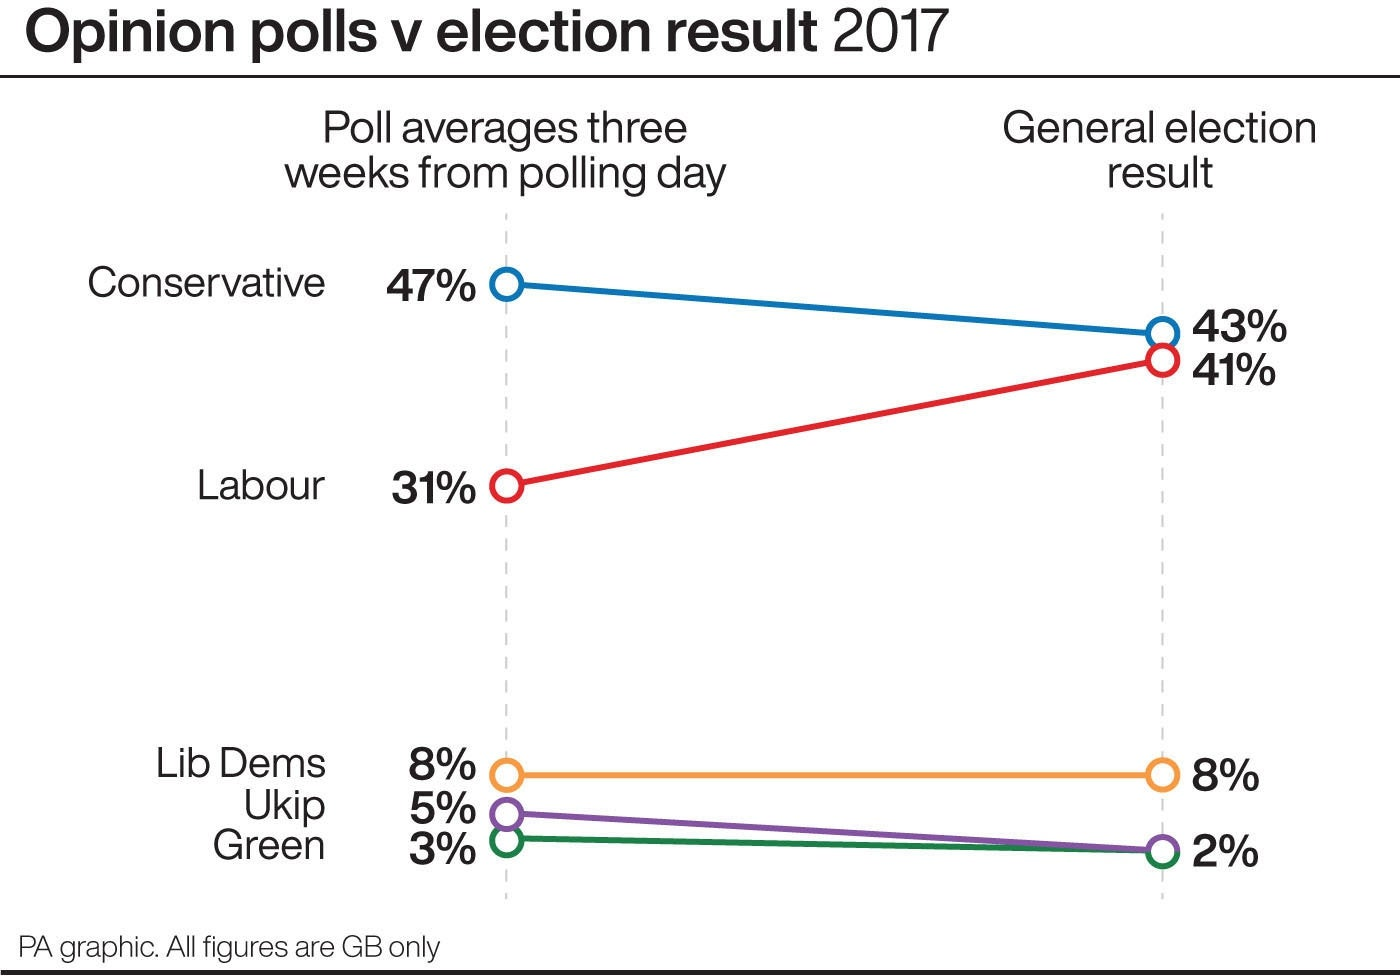 Opinion polls (three weeks to go) v election result 2017